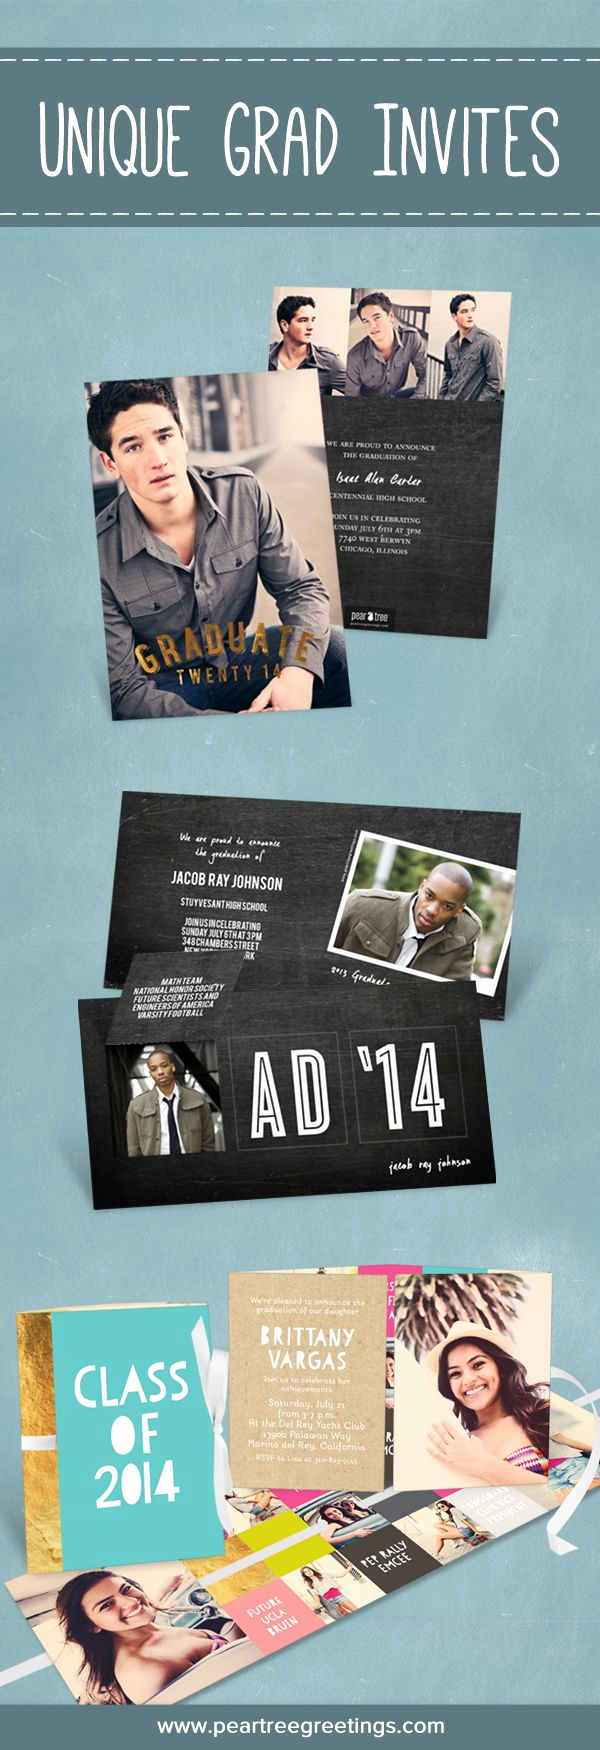 Creative Graduation Invitation Ideas Best Of Best 25 Unique Graduation Invitations Ideas On Pinterest